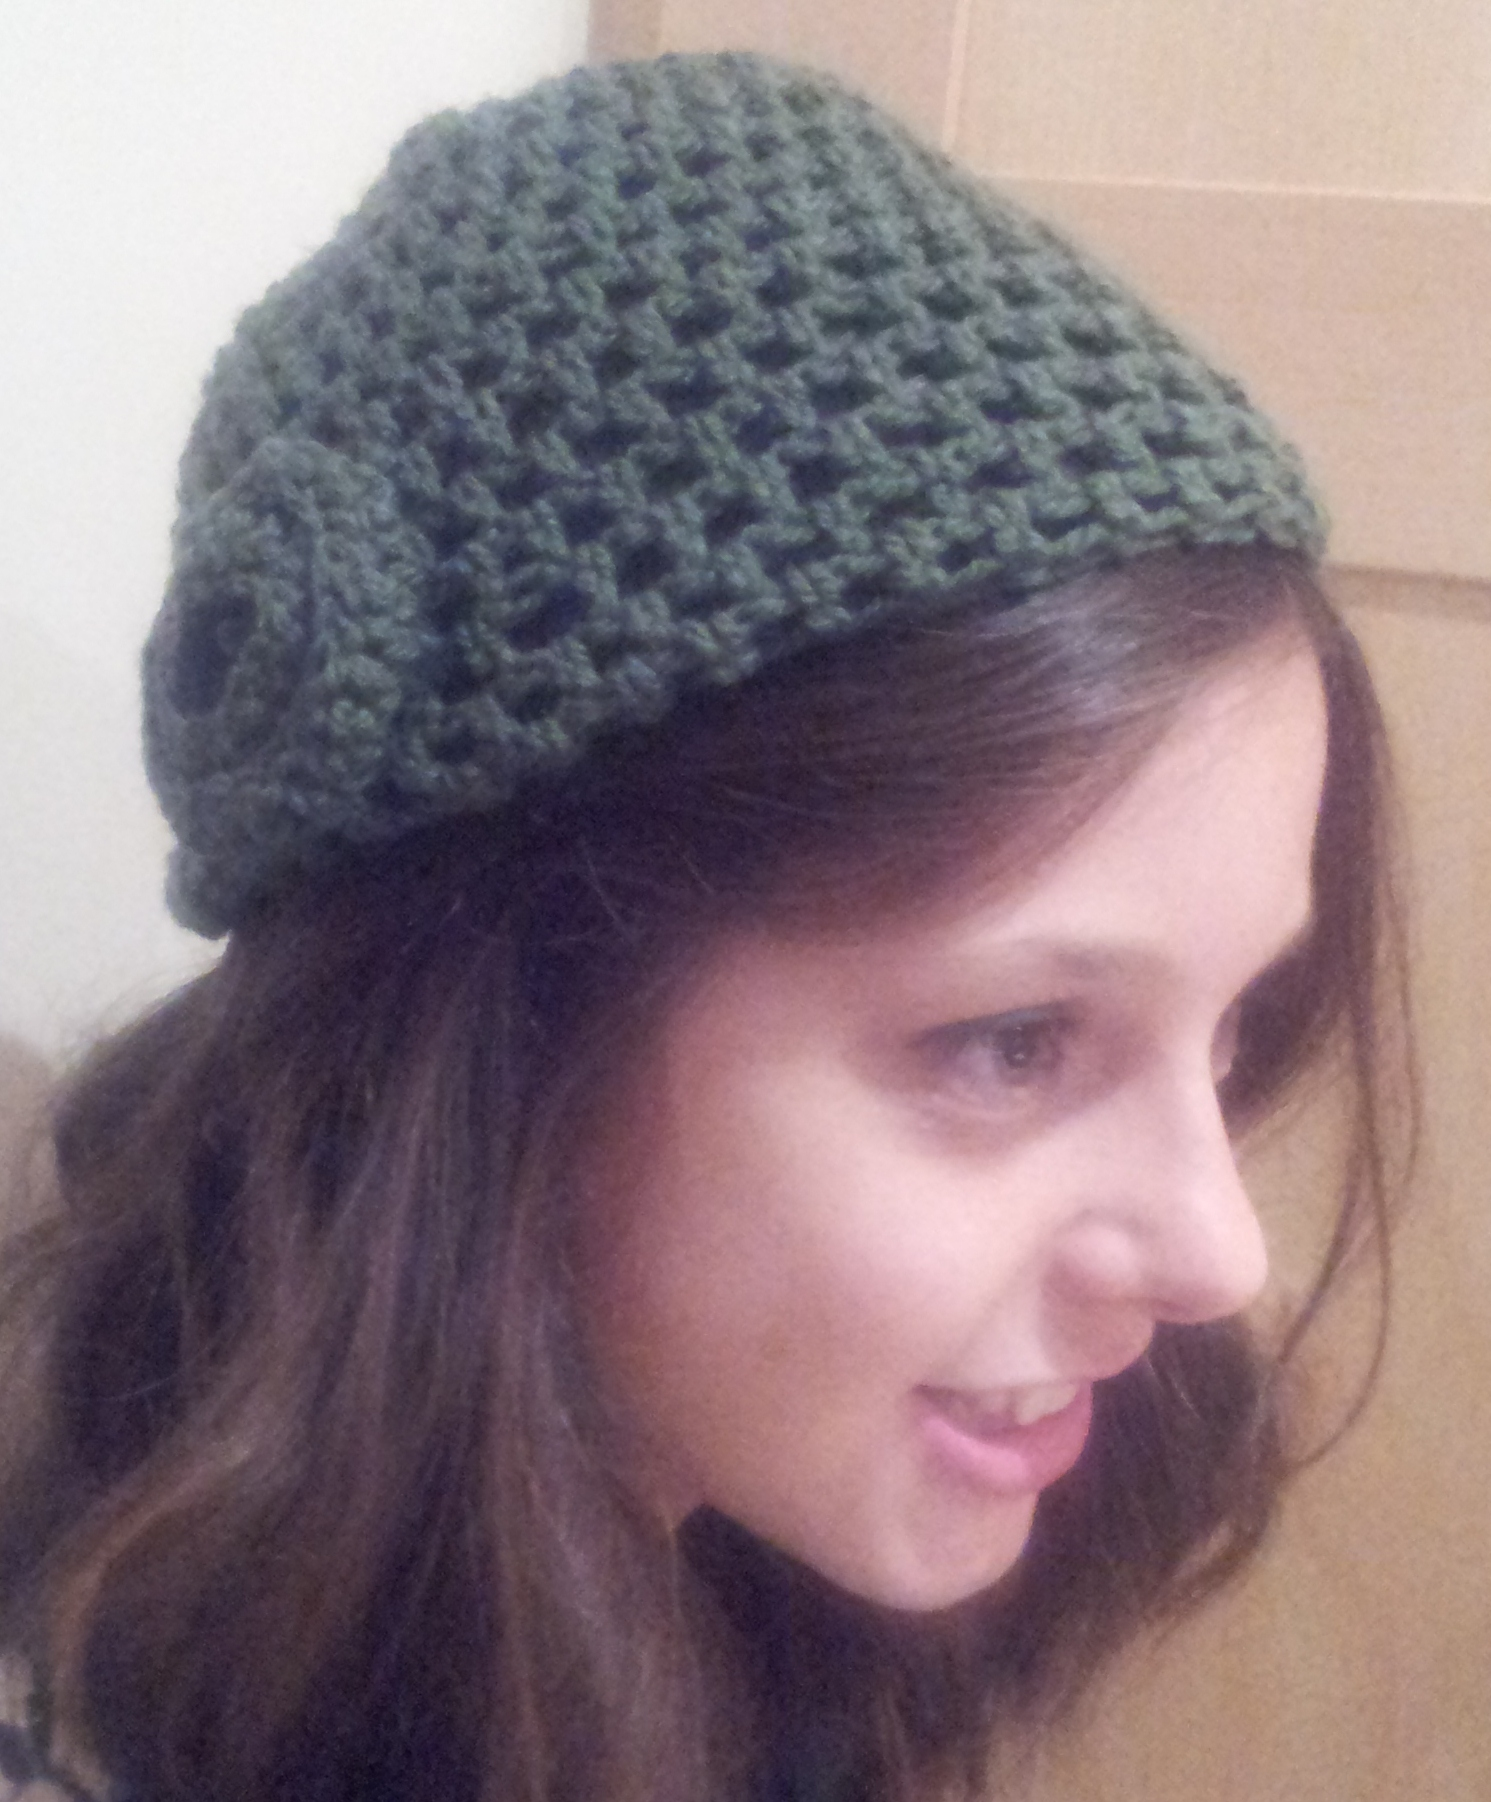 How to make a Simple Crochet Hat - Free Pattern thestitchsharer